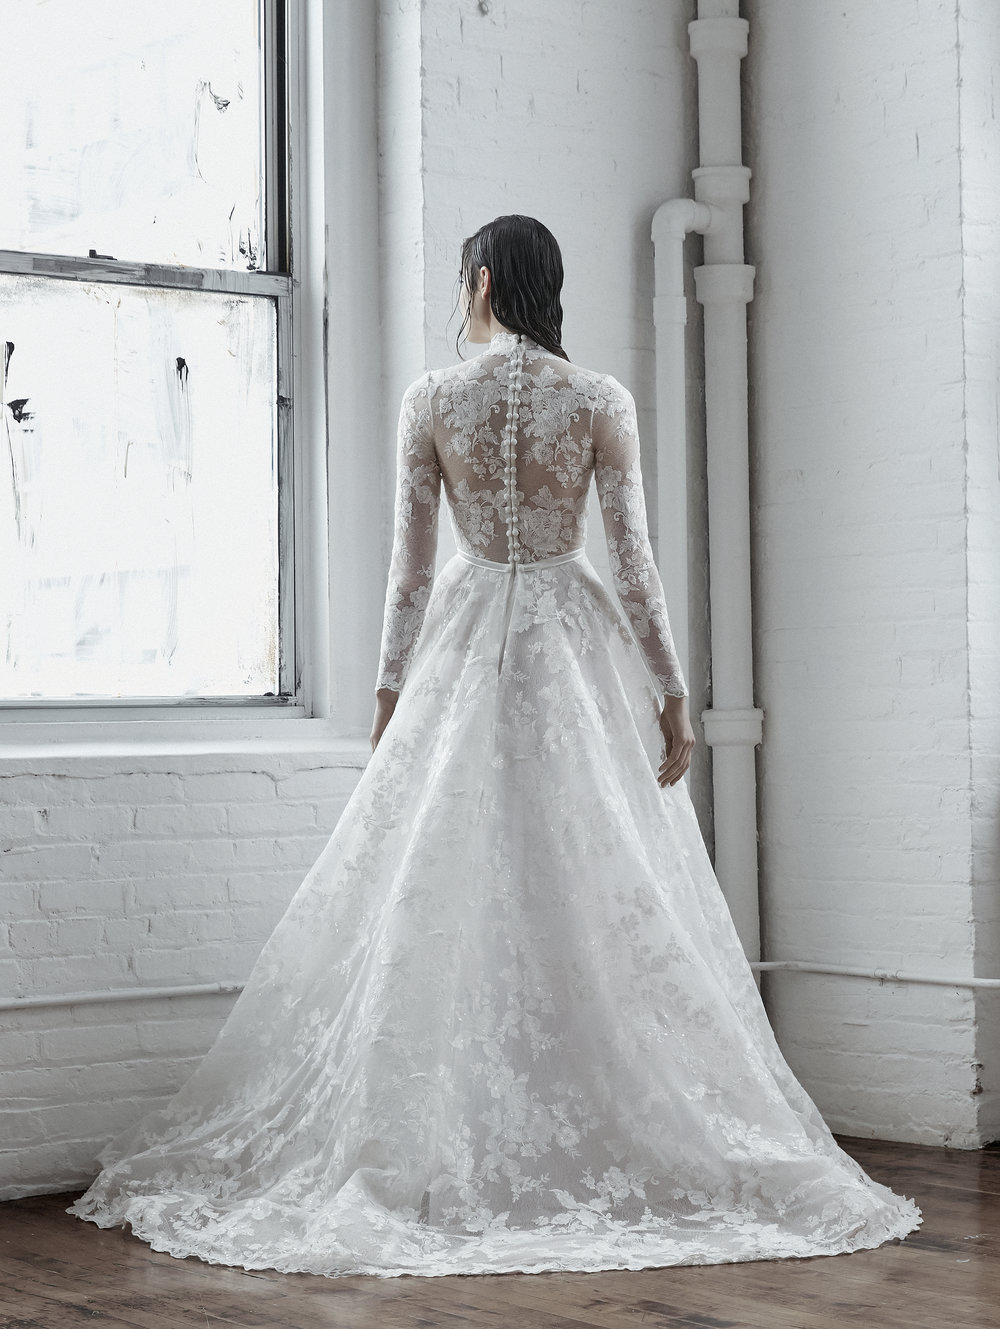 Illusion Long Sleeve Ball Gown Wedding Dress With High Neck